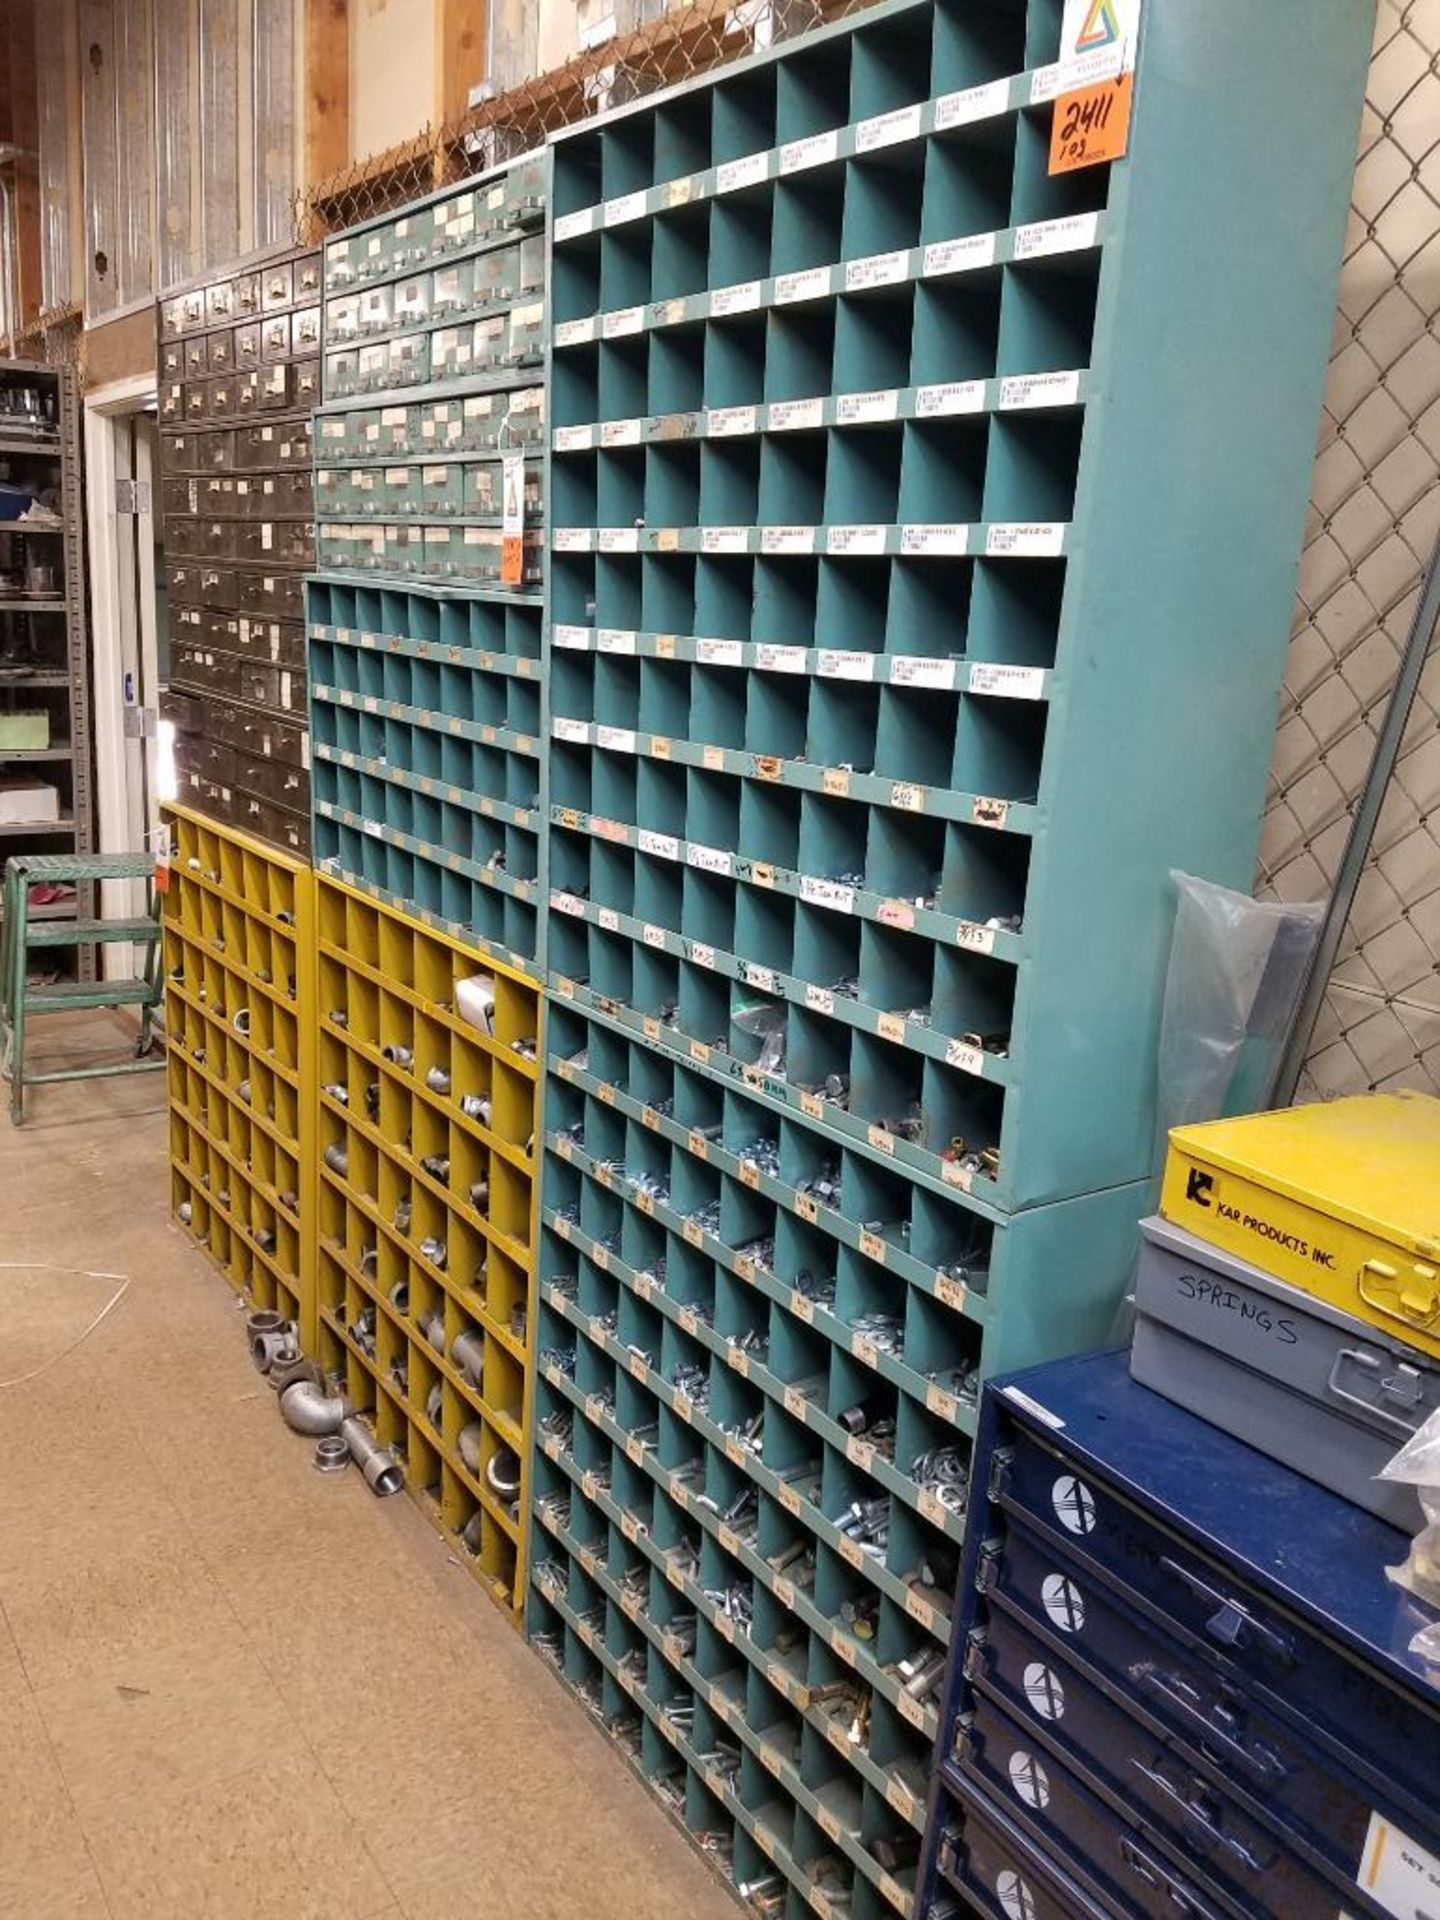 various nuts, bolts, screws, and pipes, storage units not included